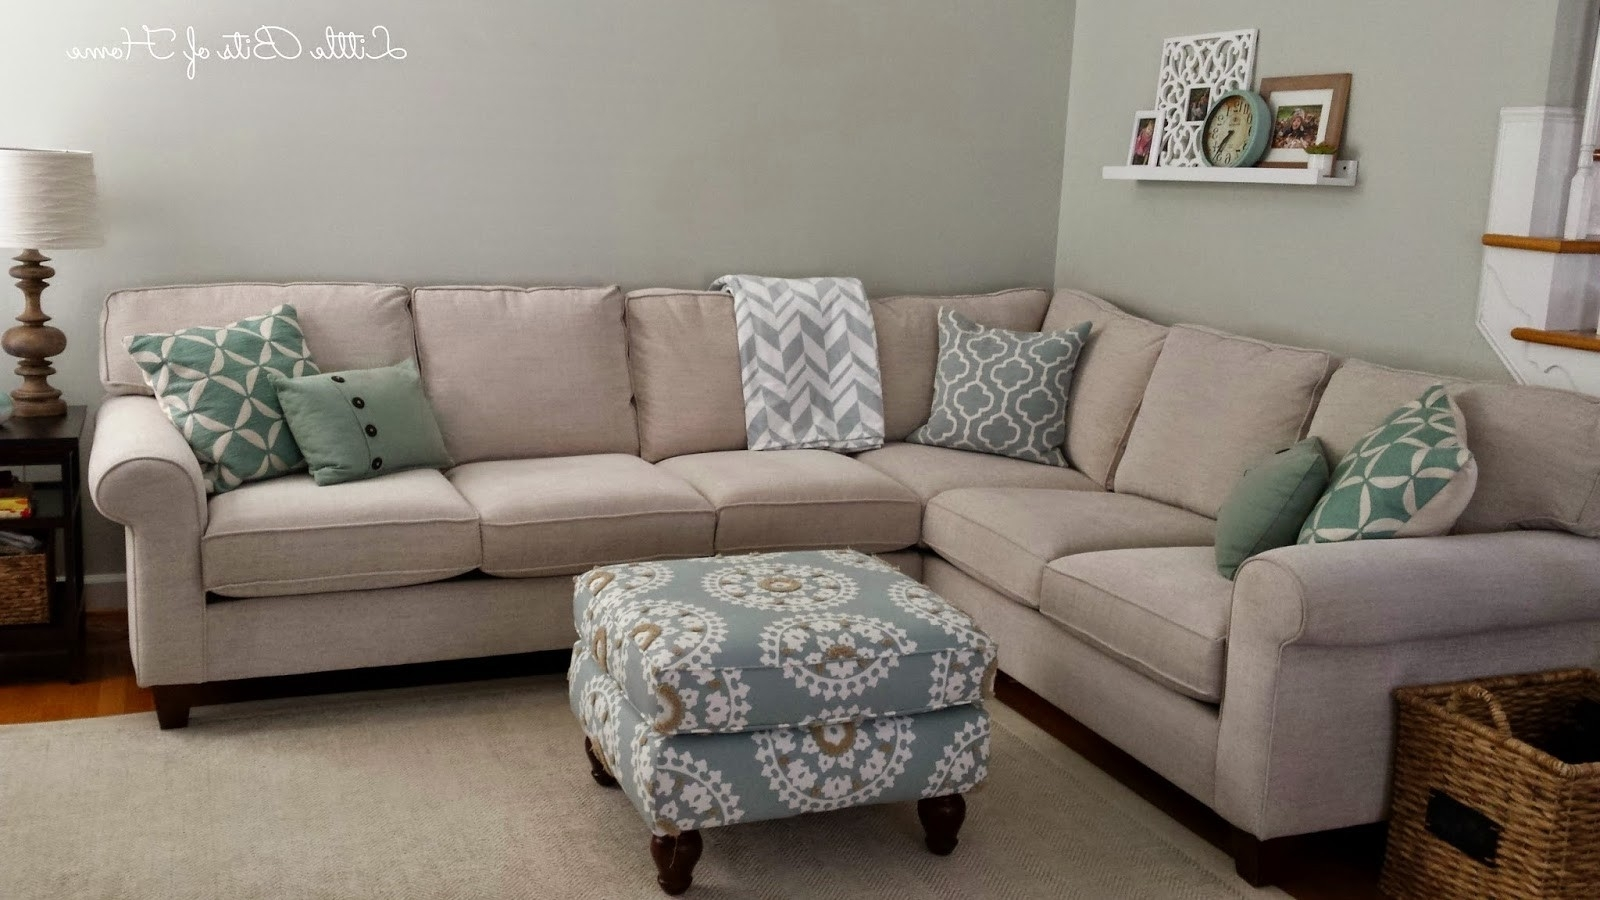 Lovely Haverty Sectional Sofa – Buildsimplehome For Well Liked Sectional Sofas At Havertys (View 3 of 15)